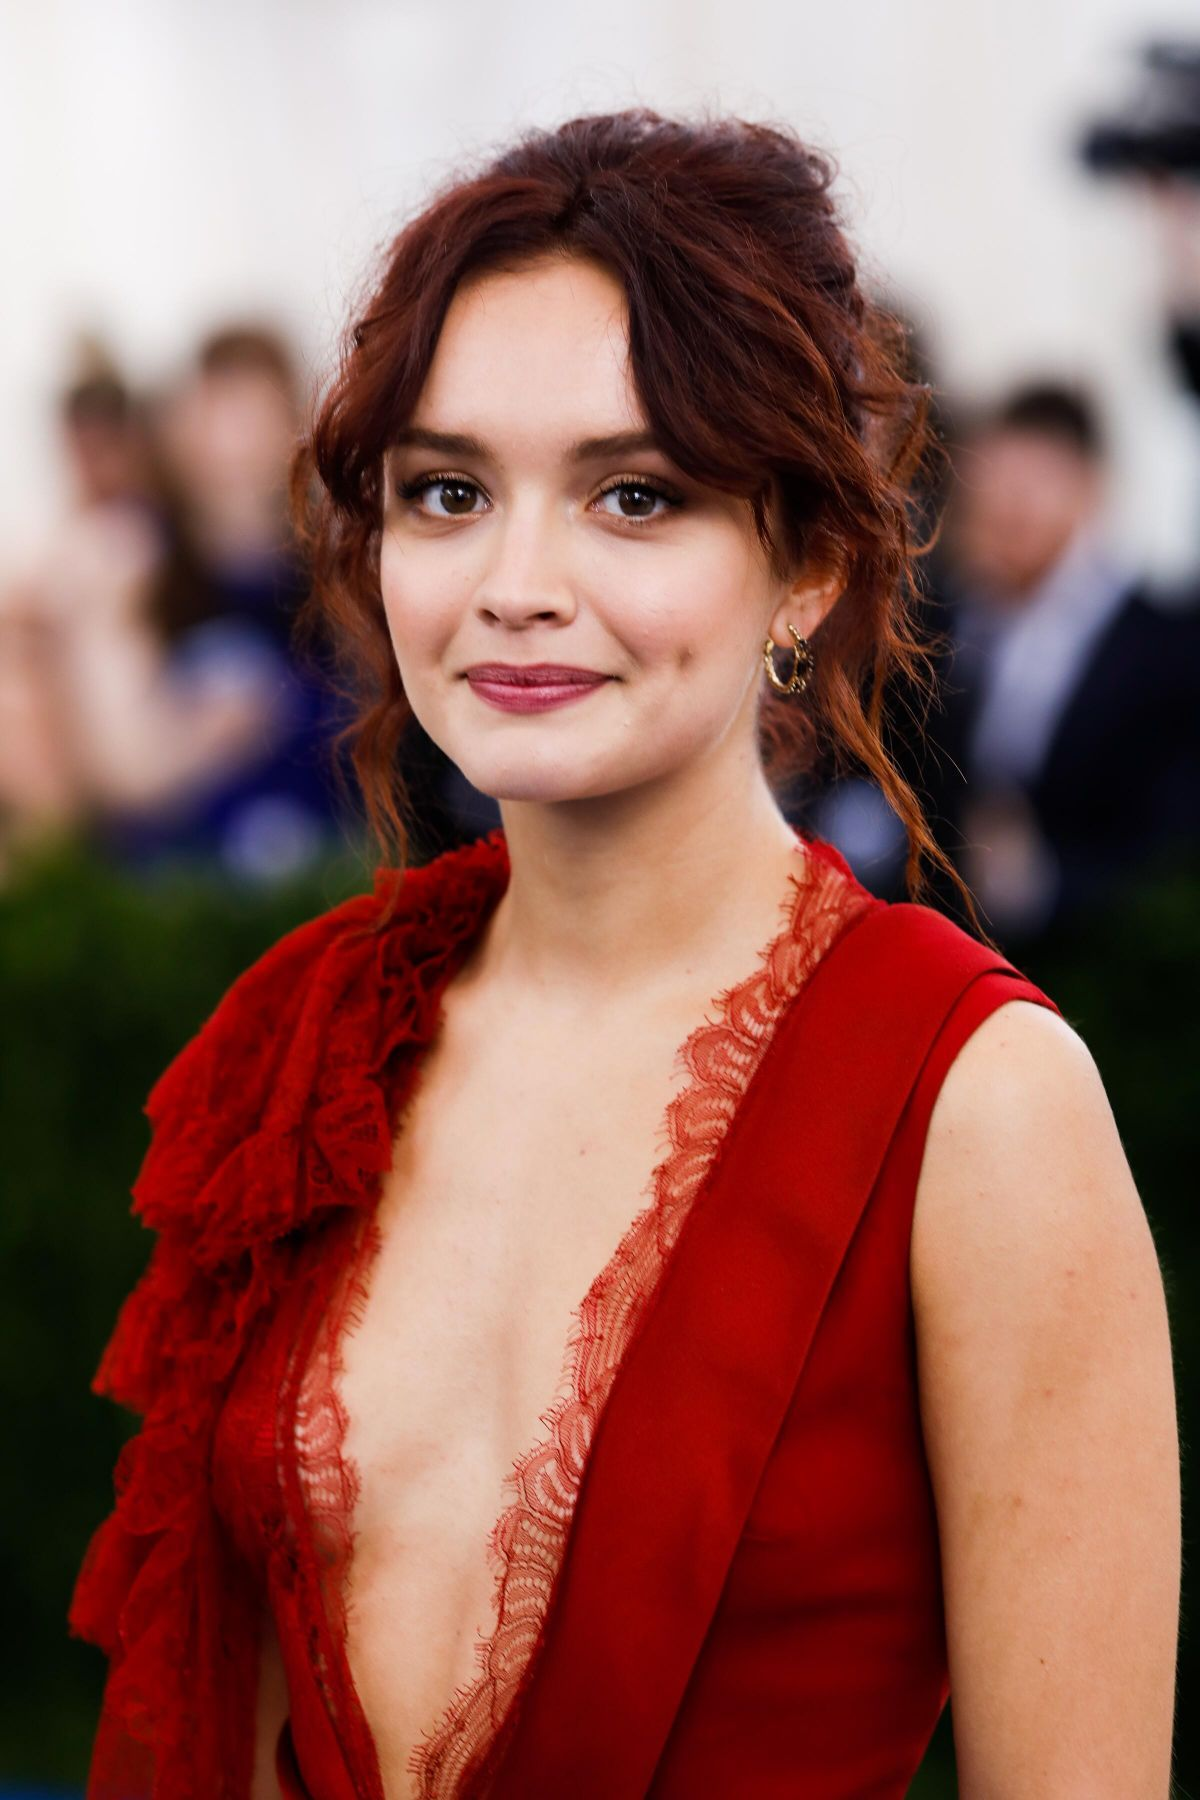 Pics Olivia Cooke nude (37 photos), Tits, Hot, Instagram, lingerie 2019